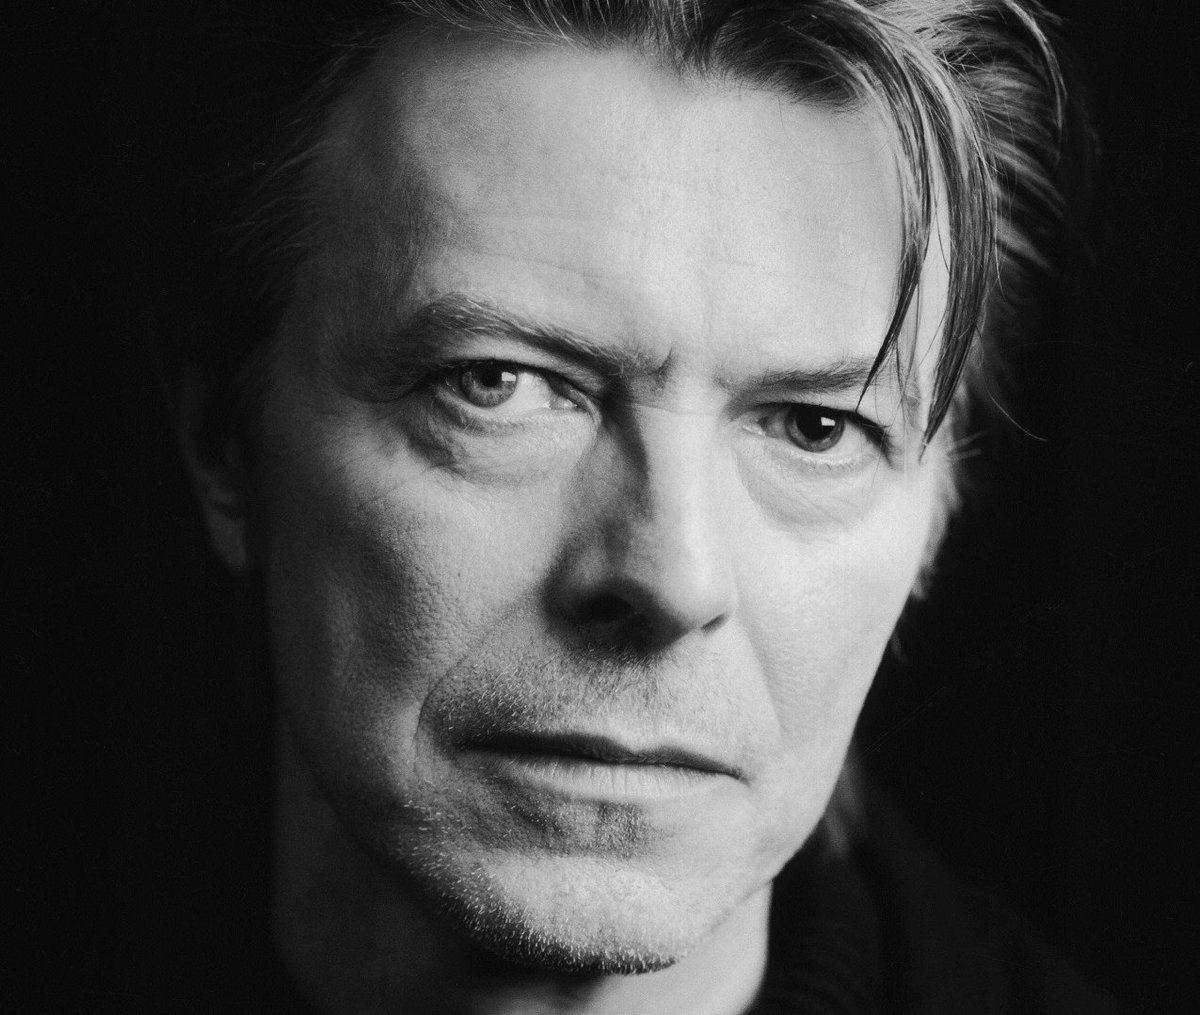 """David Bowie, you will be sorely missed.  Bowie's """"Changes"""" and the Ziggy story songs were a major influence for me. https://t.co/N1nkD9h82W"""